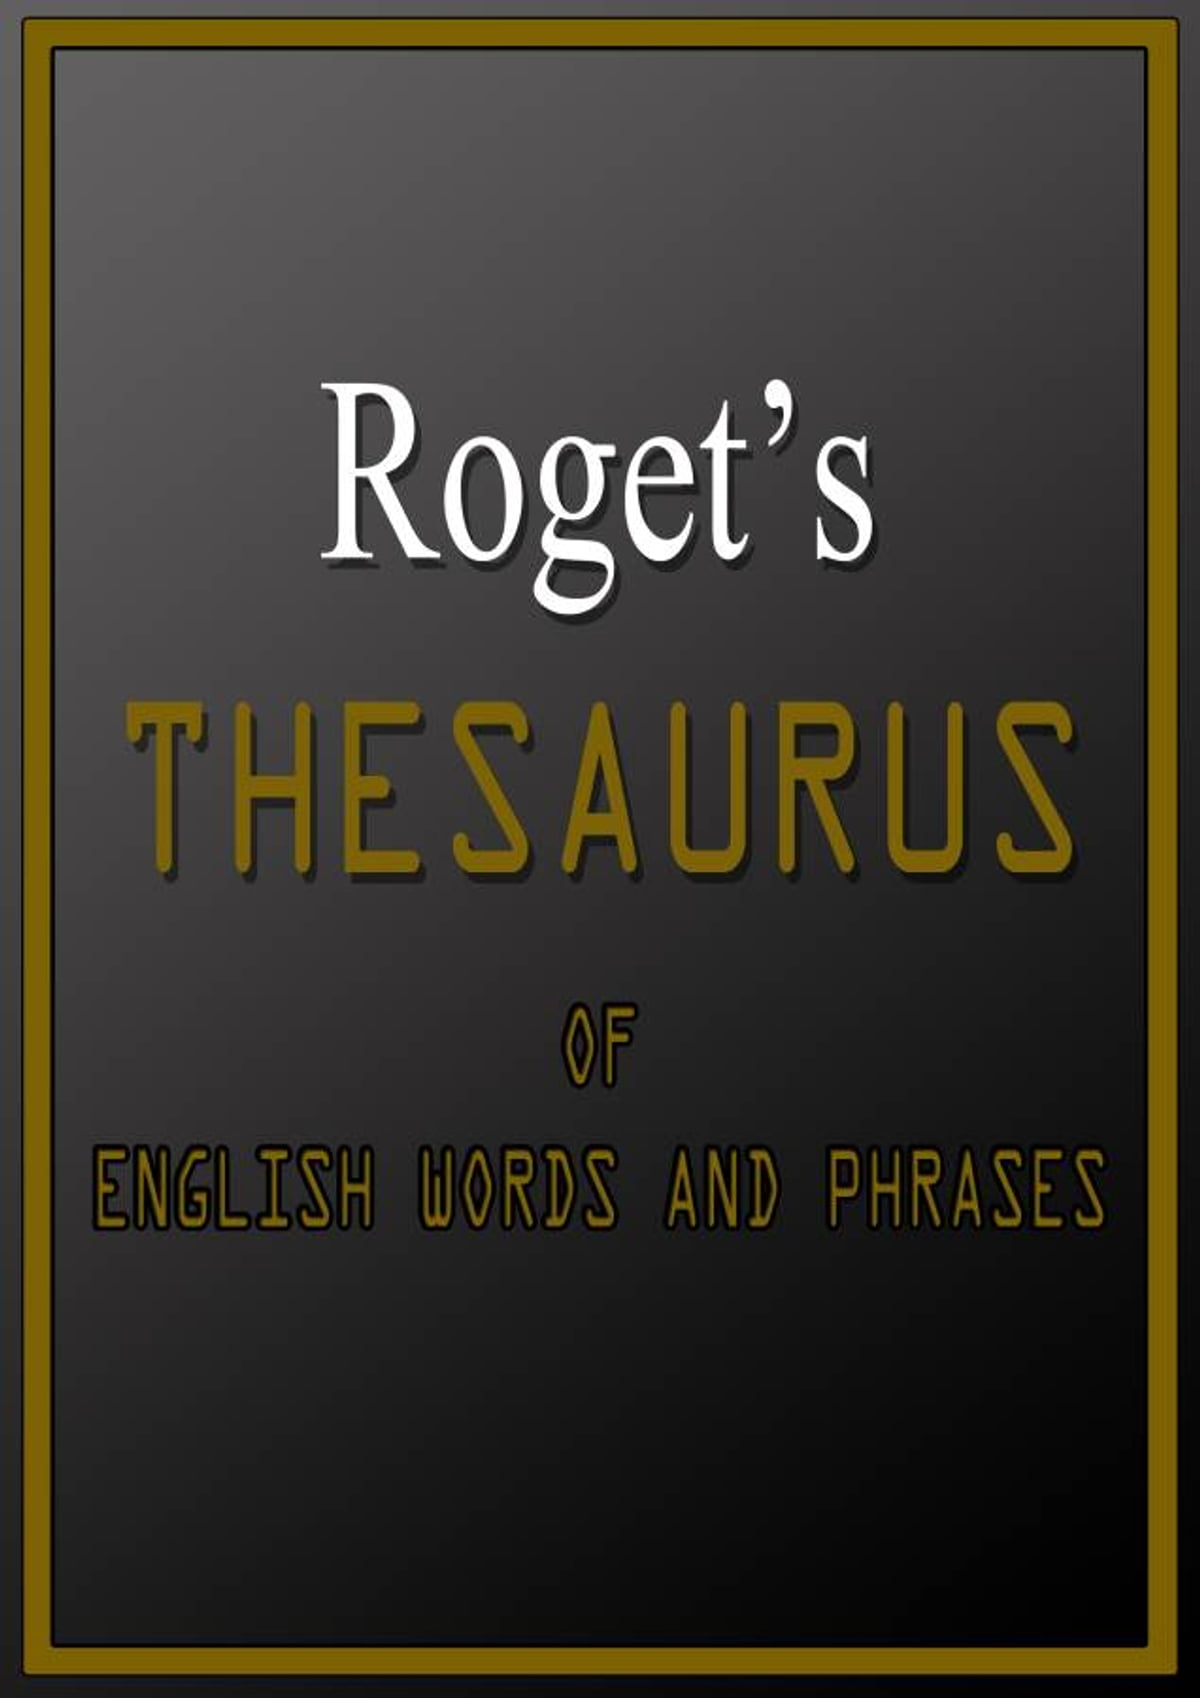 Roget's Thesaurus Of English Words And Phrases eBook by Dr. Peter Mark Roget  - 1230000010082   Rakuten Kobo